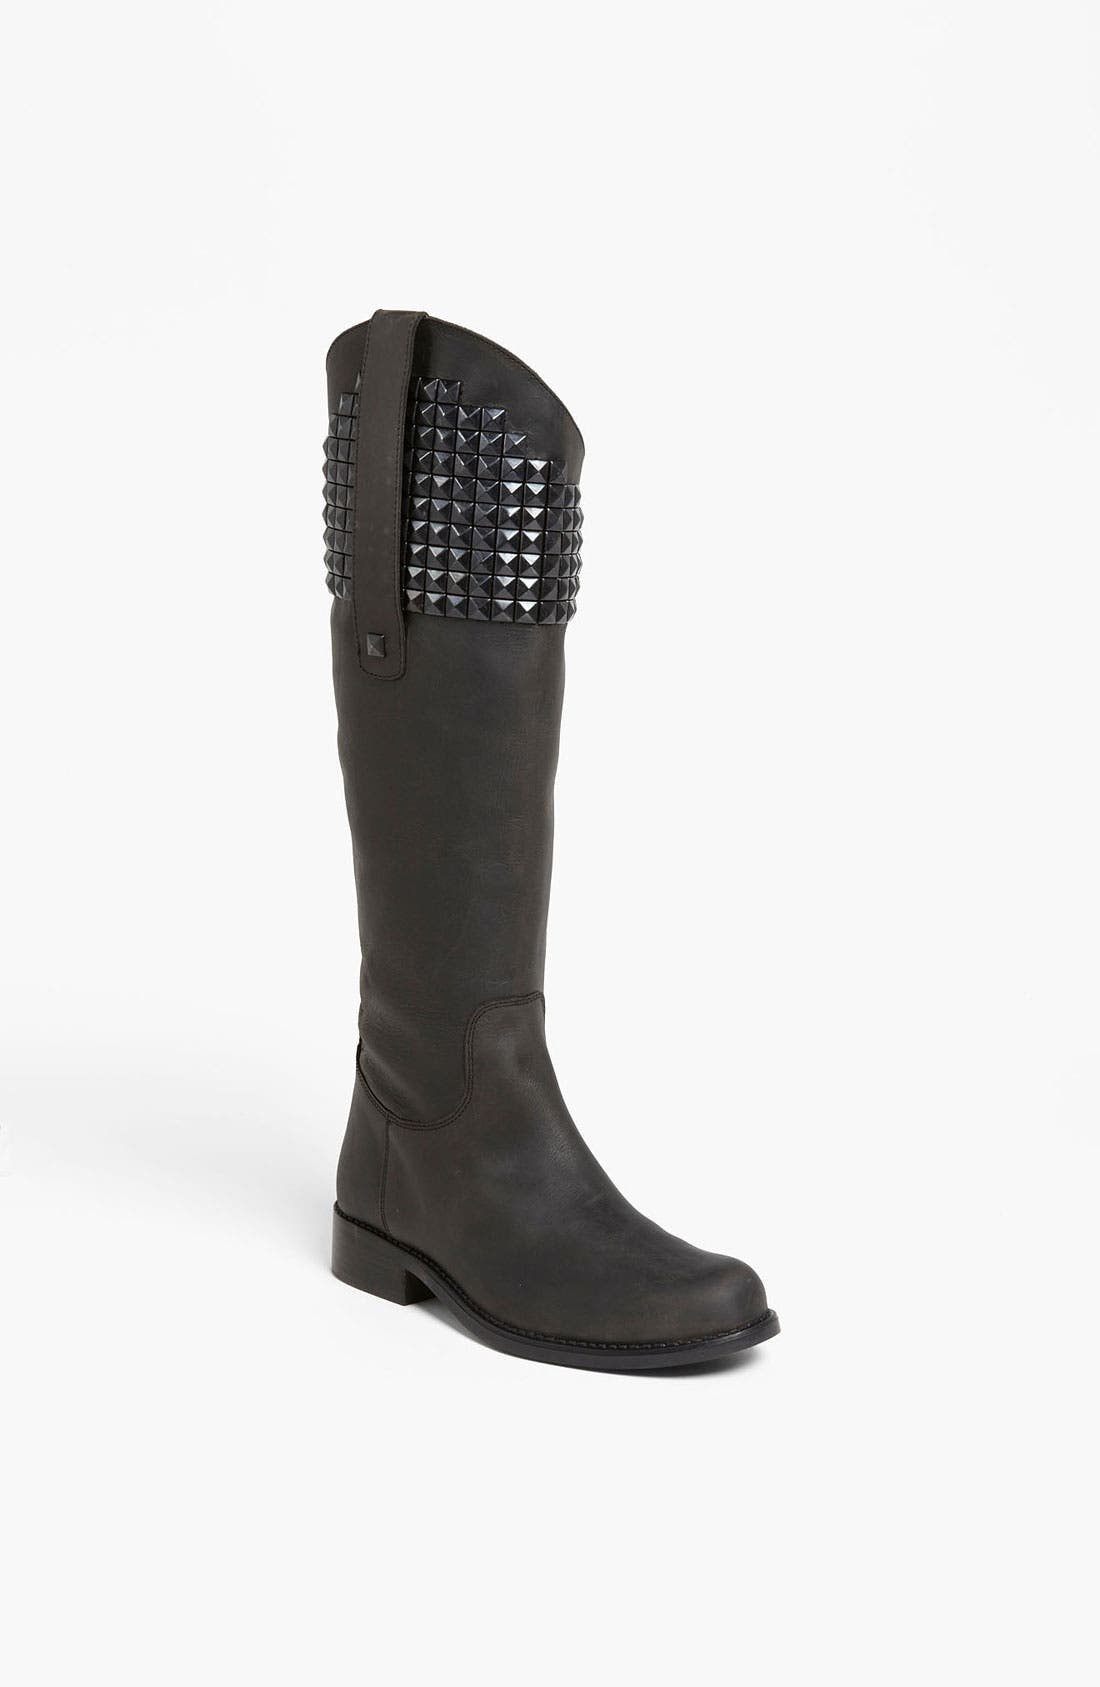 Alternate Image 1 Selected - Steve Madden 'Reggime' Boot